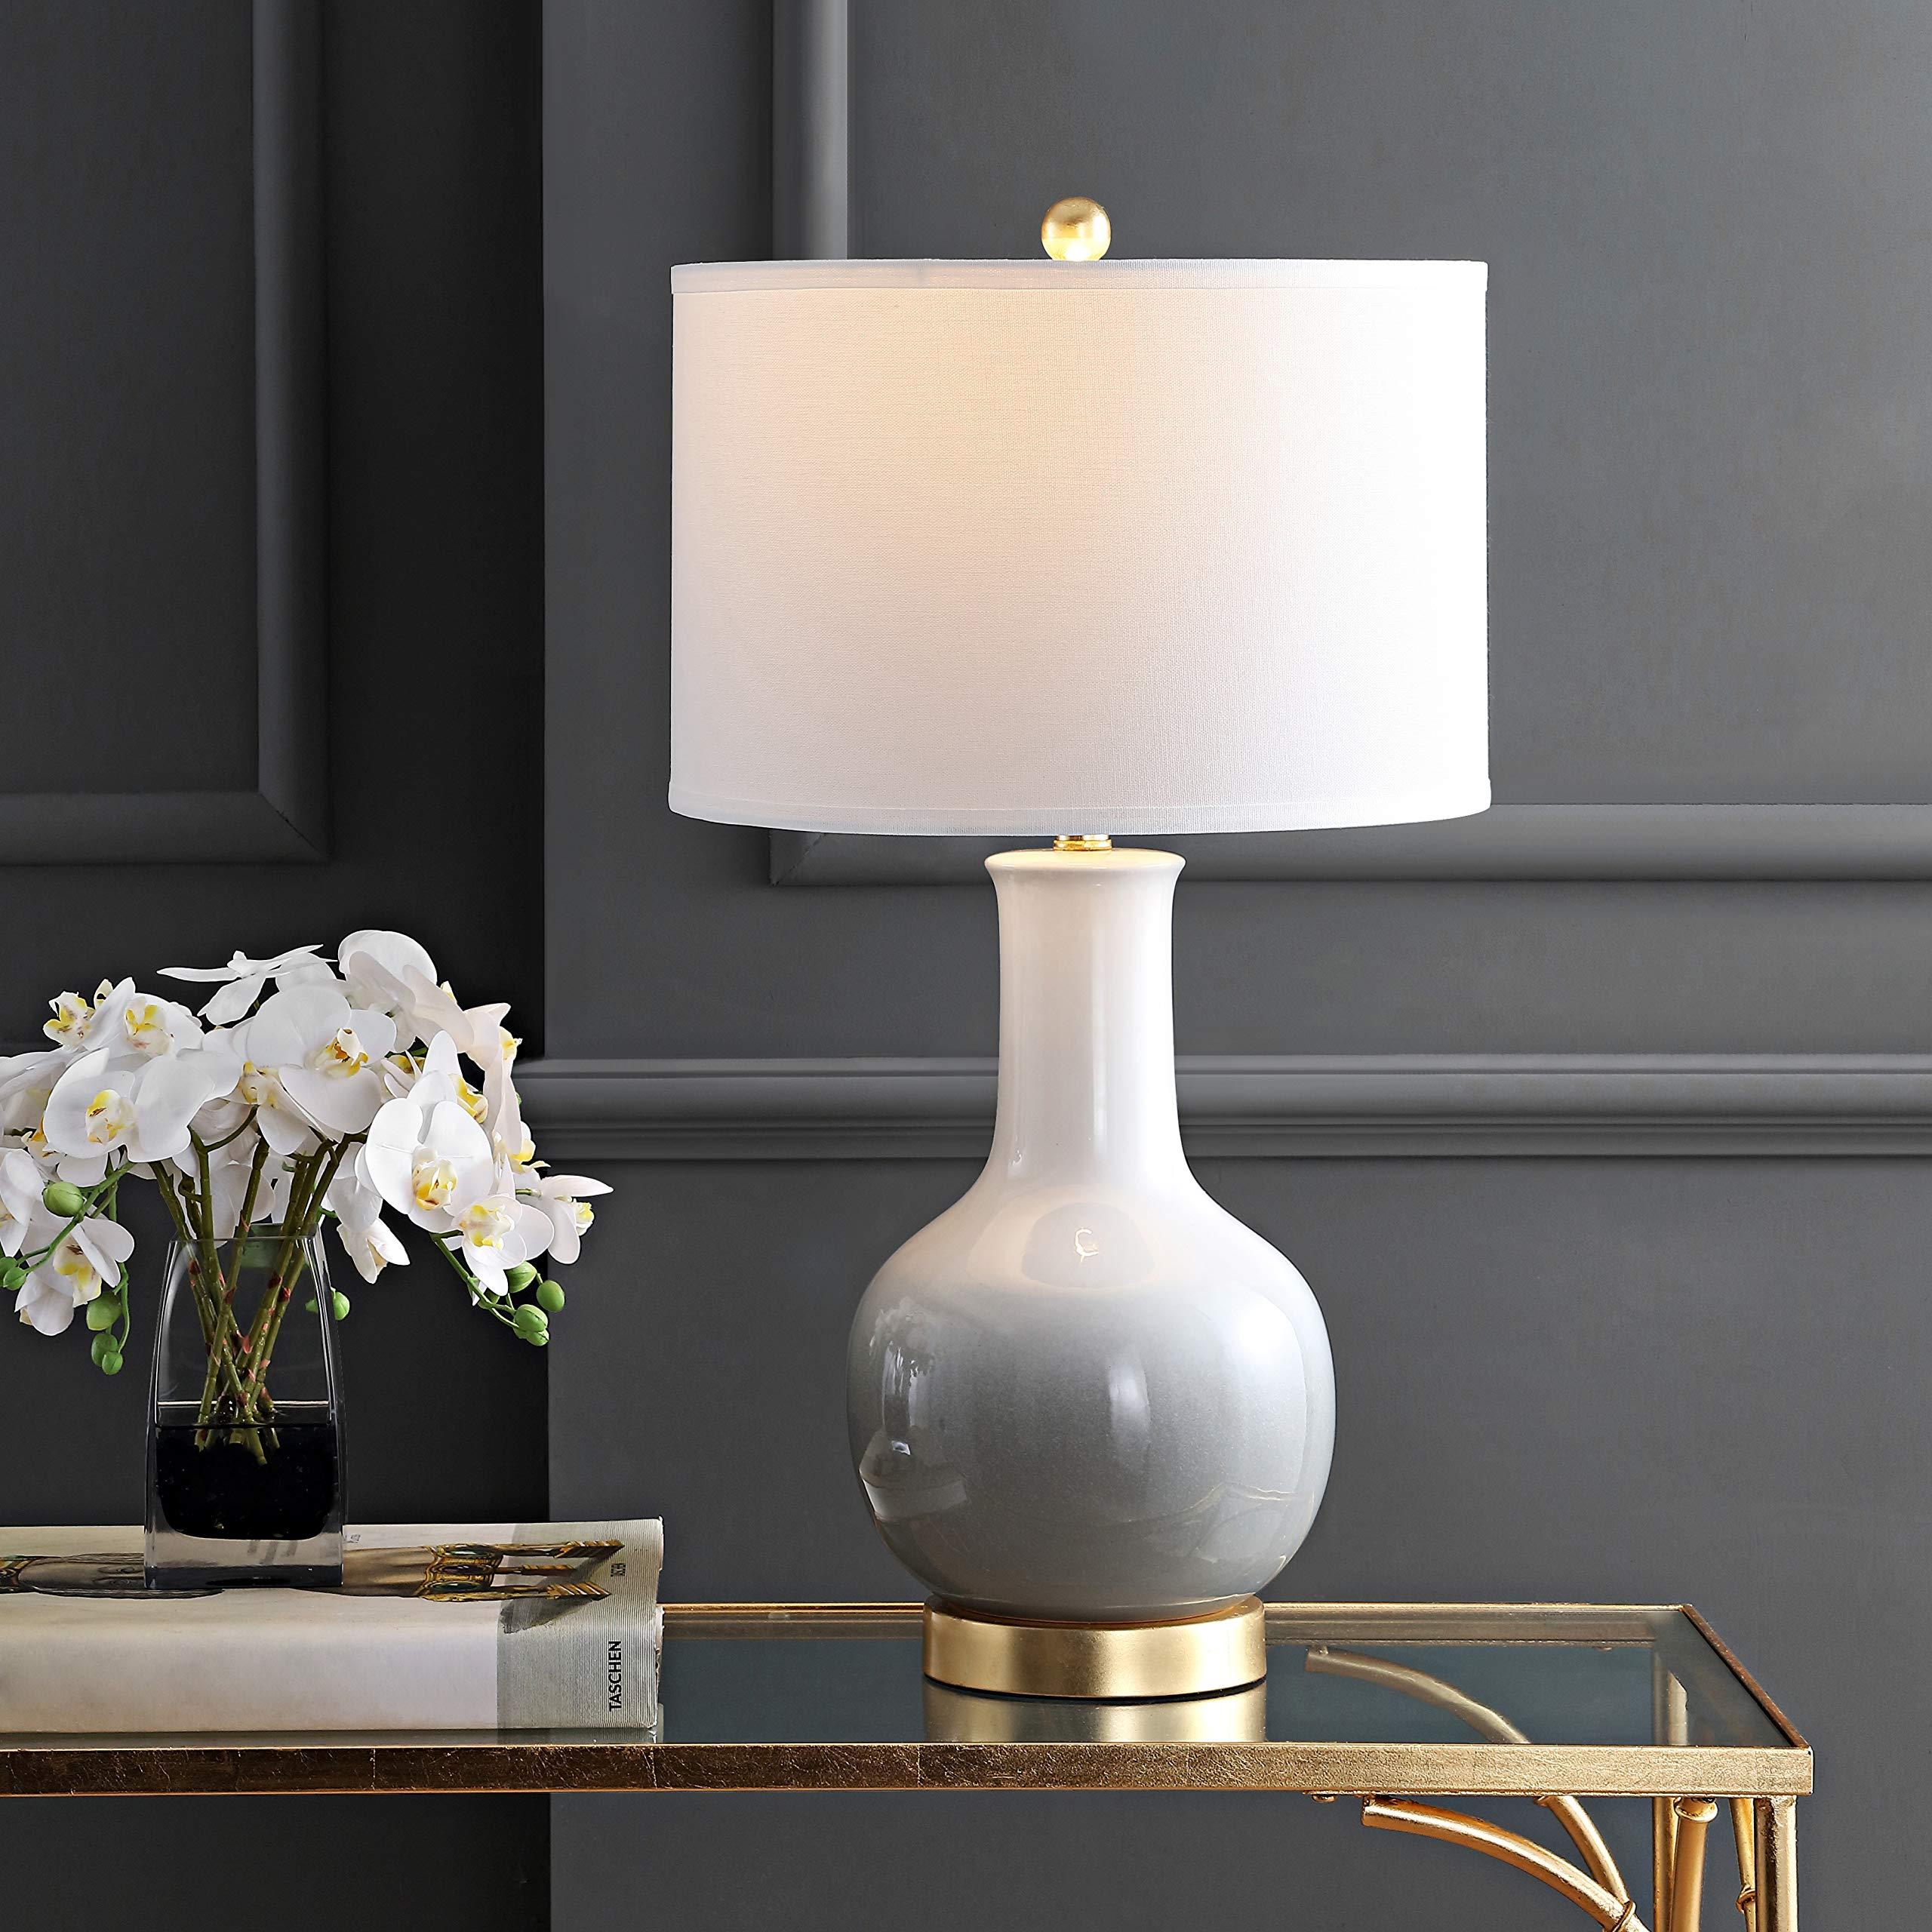 Safavieh TBL4032A Lighting Collection Alfio White Table Lamp, Grey/Gold